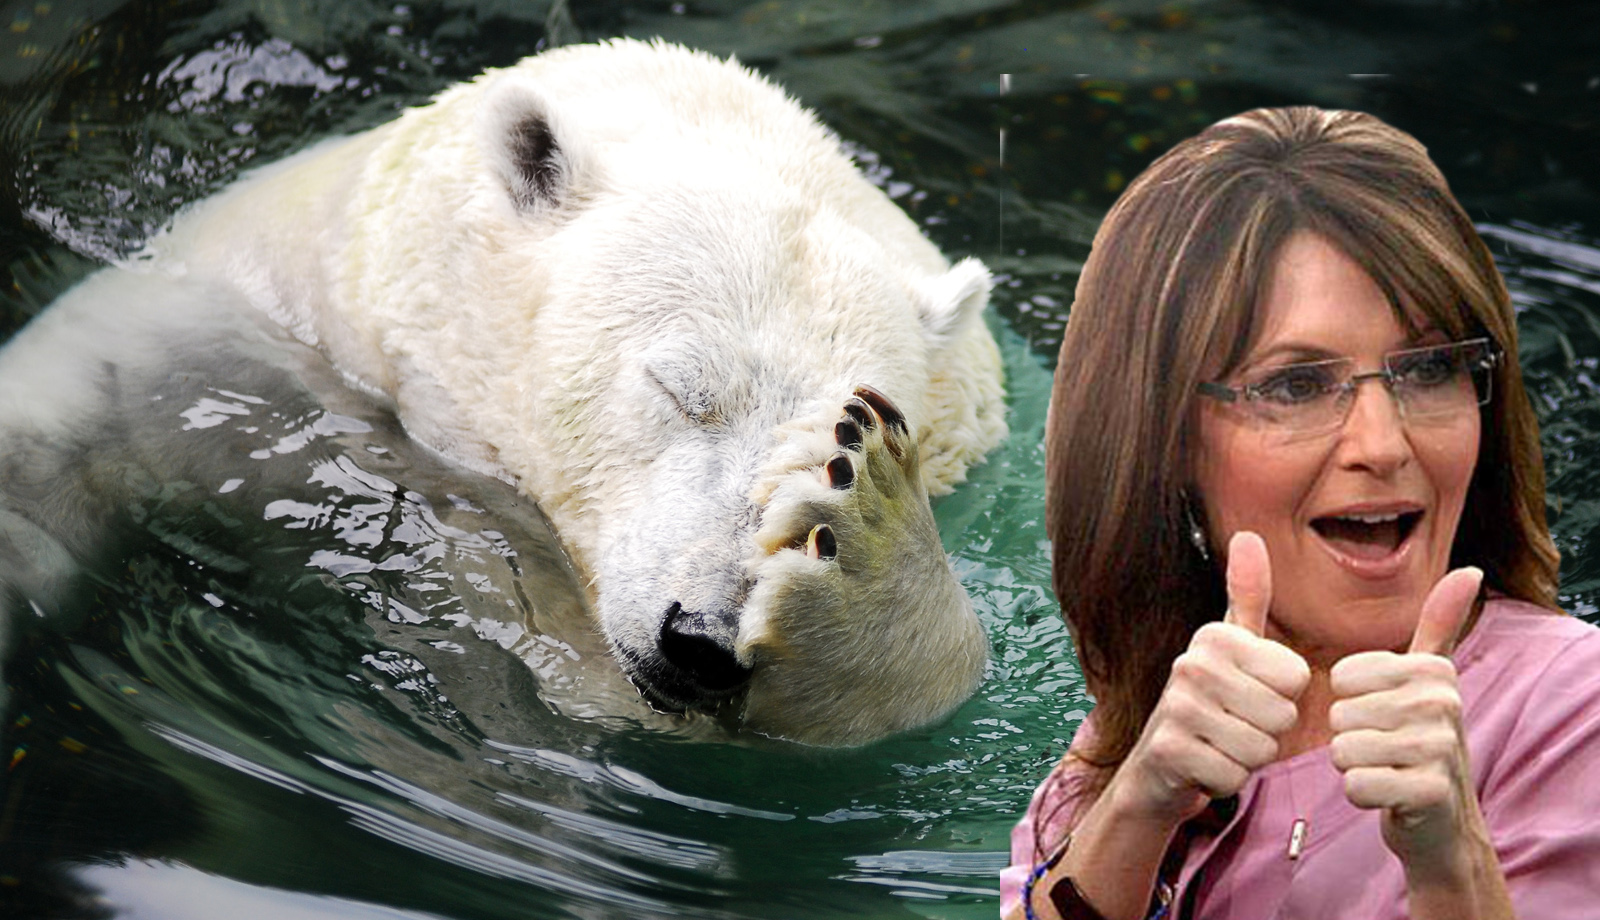 According to Sarah Palin's Logic, These Animals Need to 'Take One for the Team' and Die Already